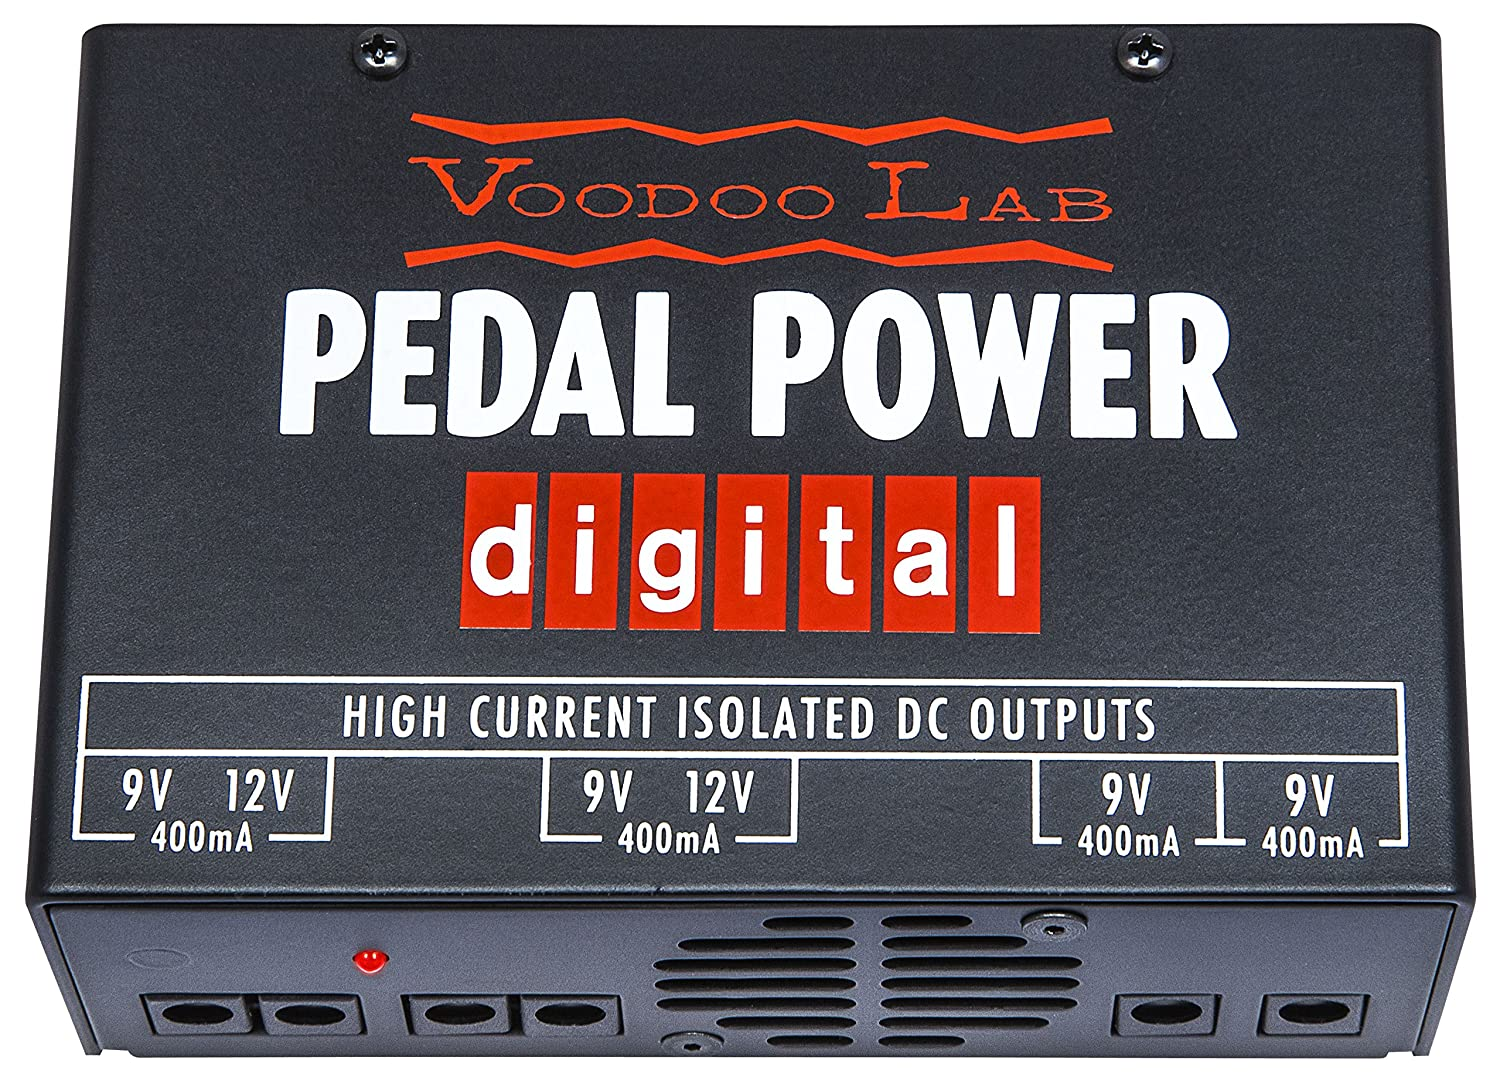 Voodoo Lab Pedal Power Digital Isolated Power Supply PPD H79048